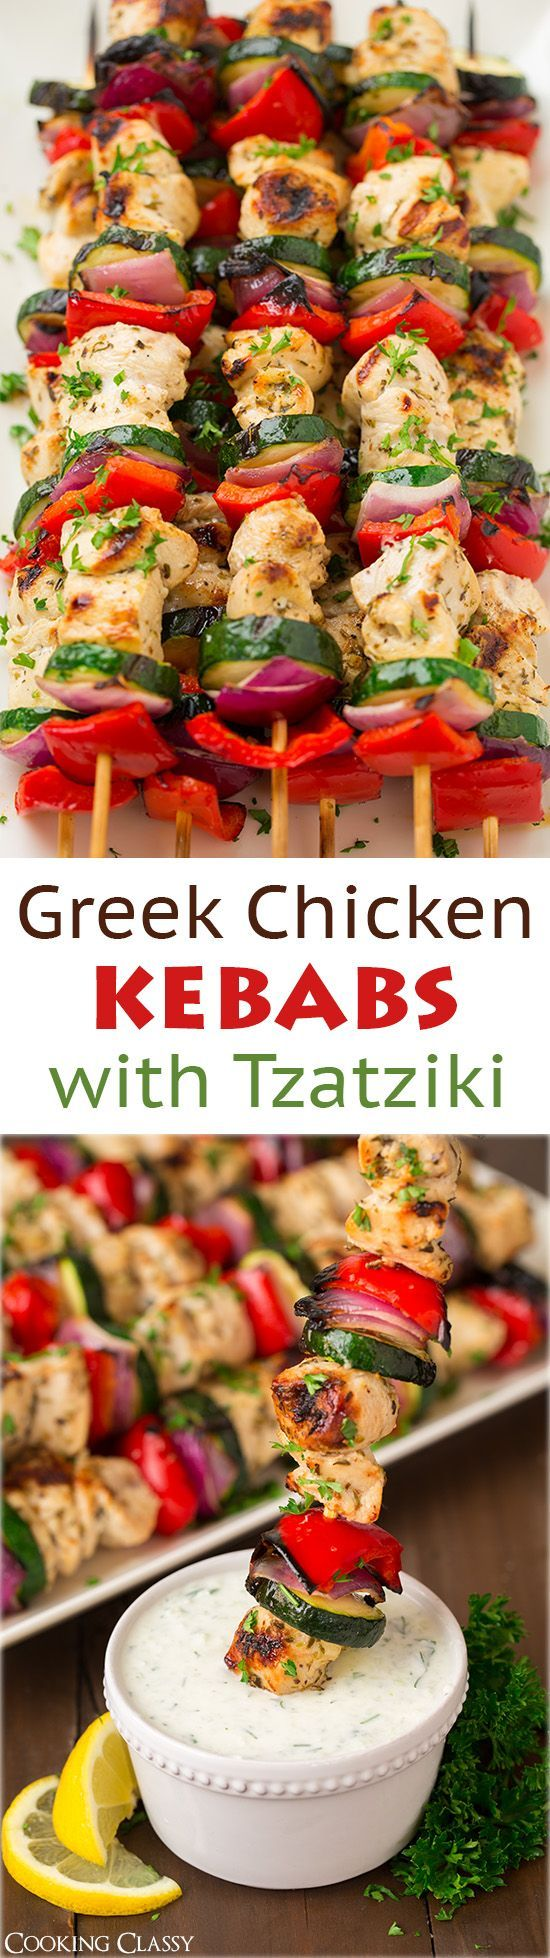 Greek Chicken Kebabs with Tzatziki Sauce - I could live on these! They're so flavorful and they're healthy! Love Greek food.